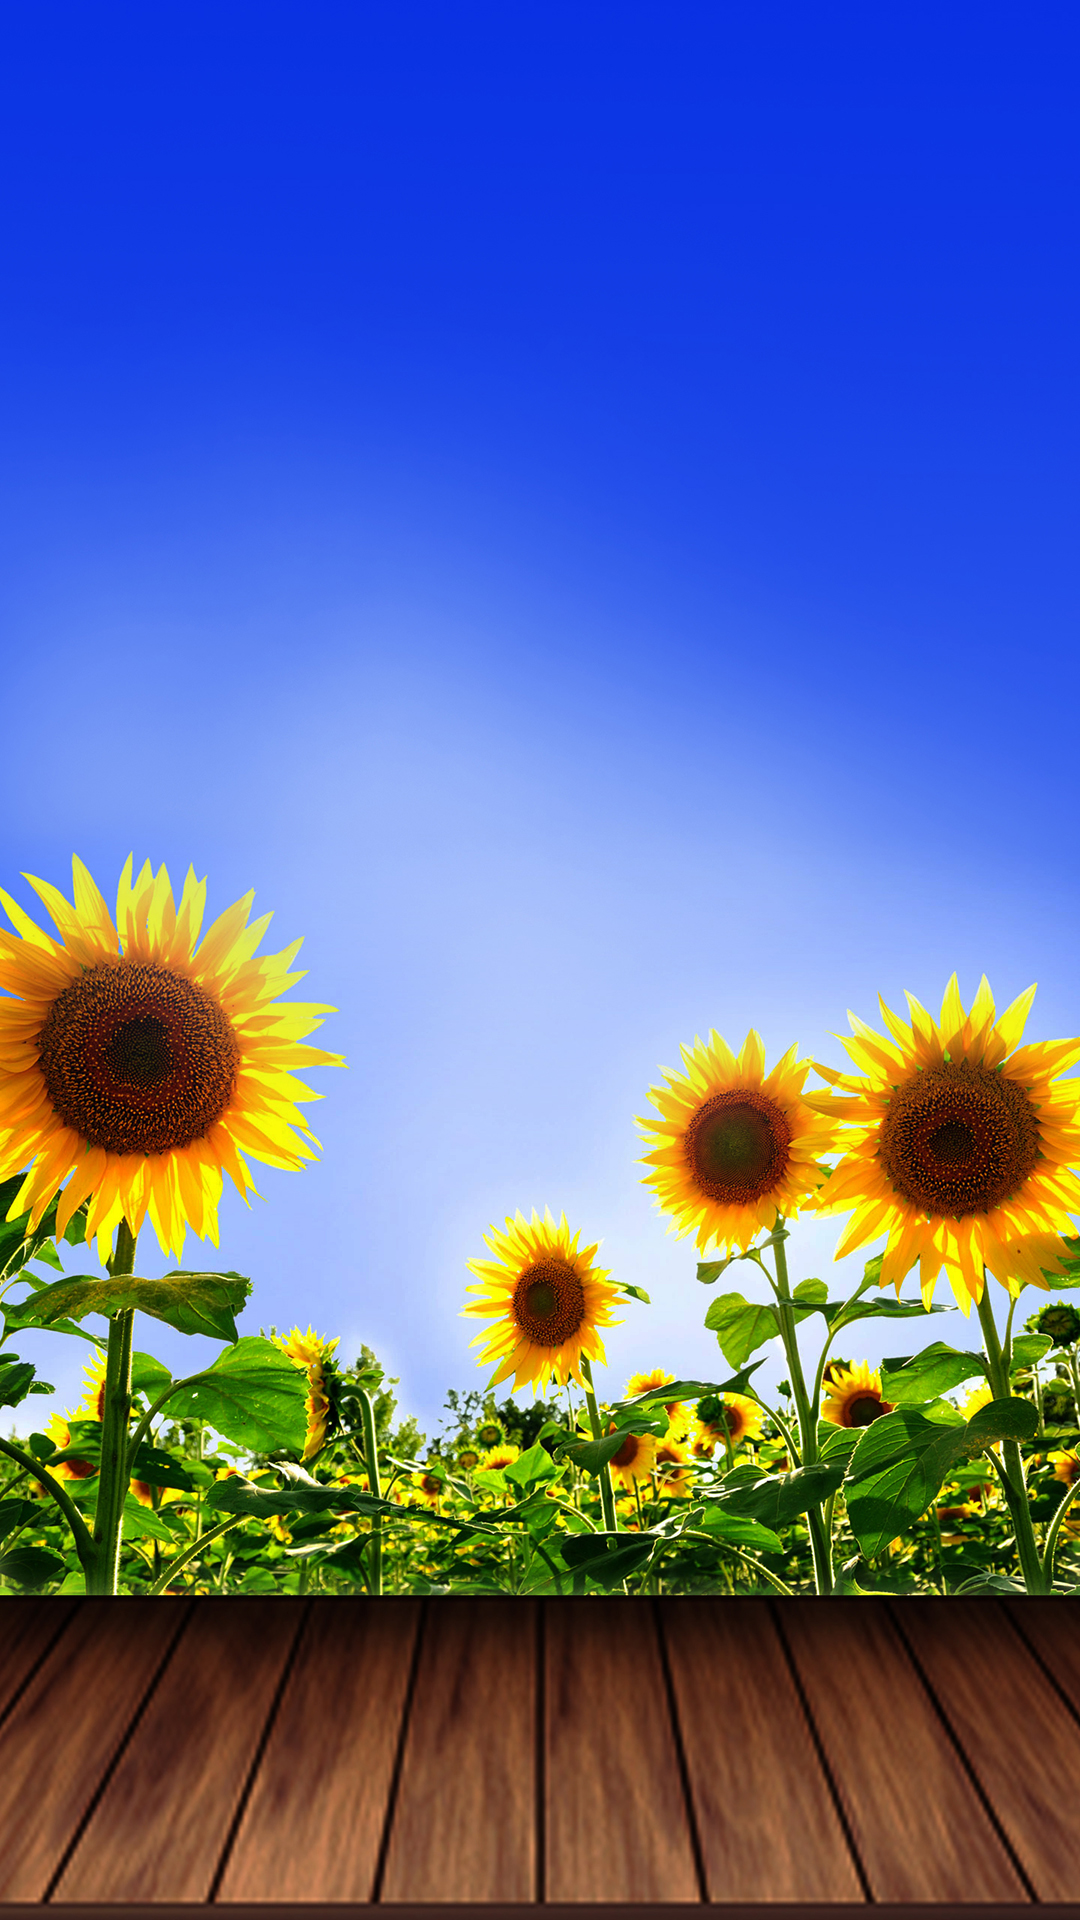 Sunflower Wallpaper IPhone 6 Plus Click Here To Download